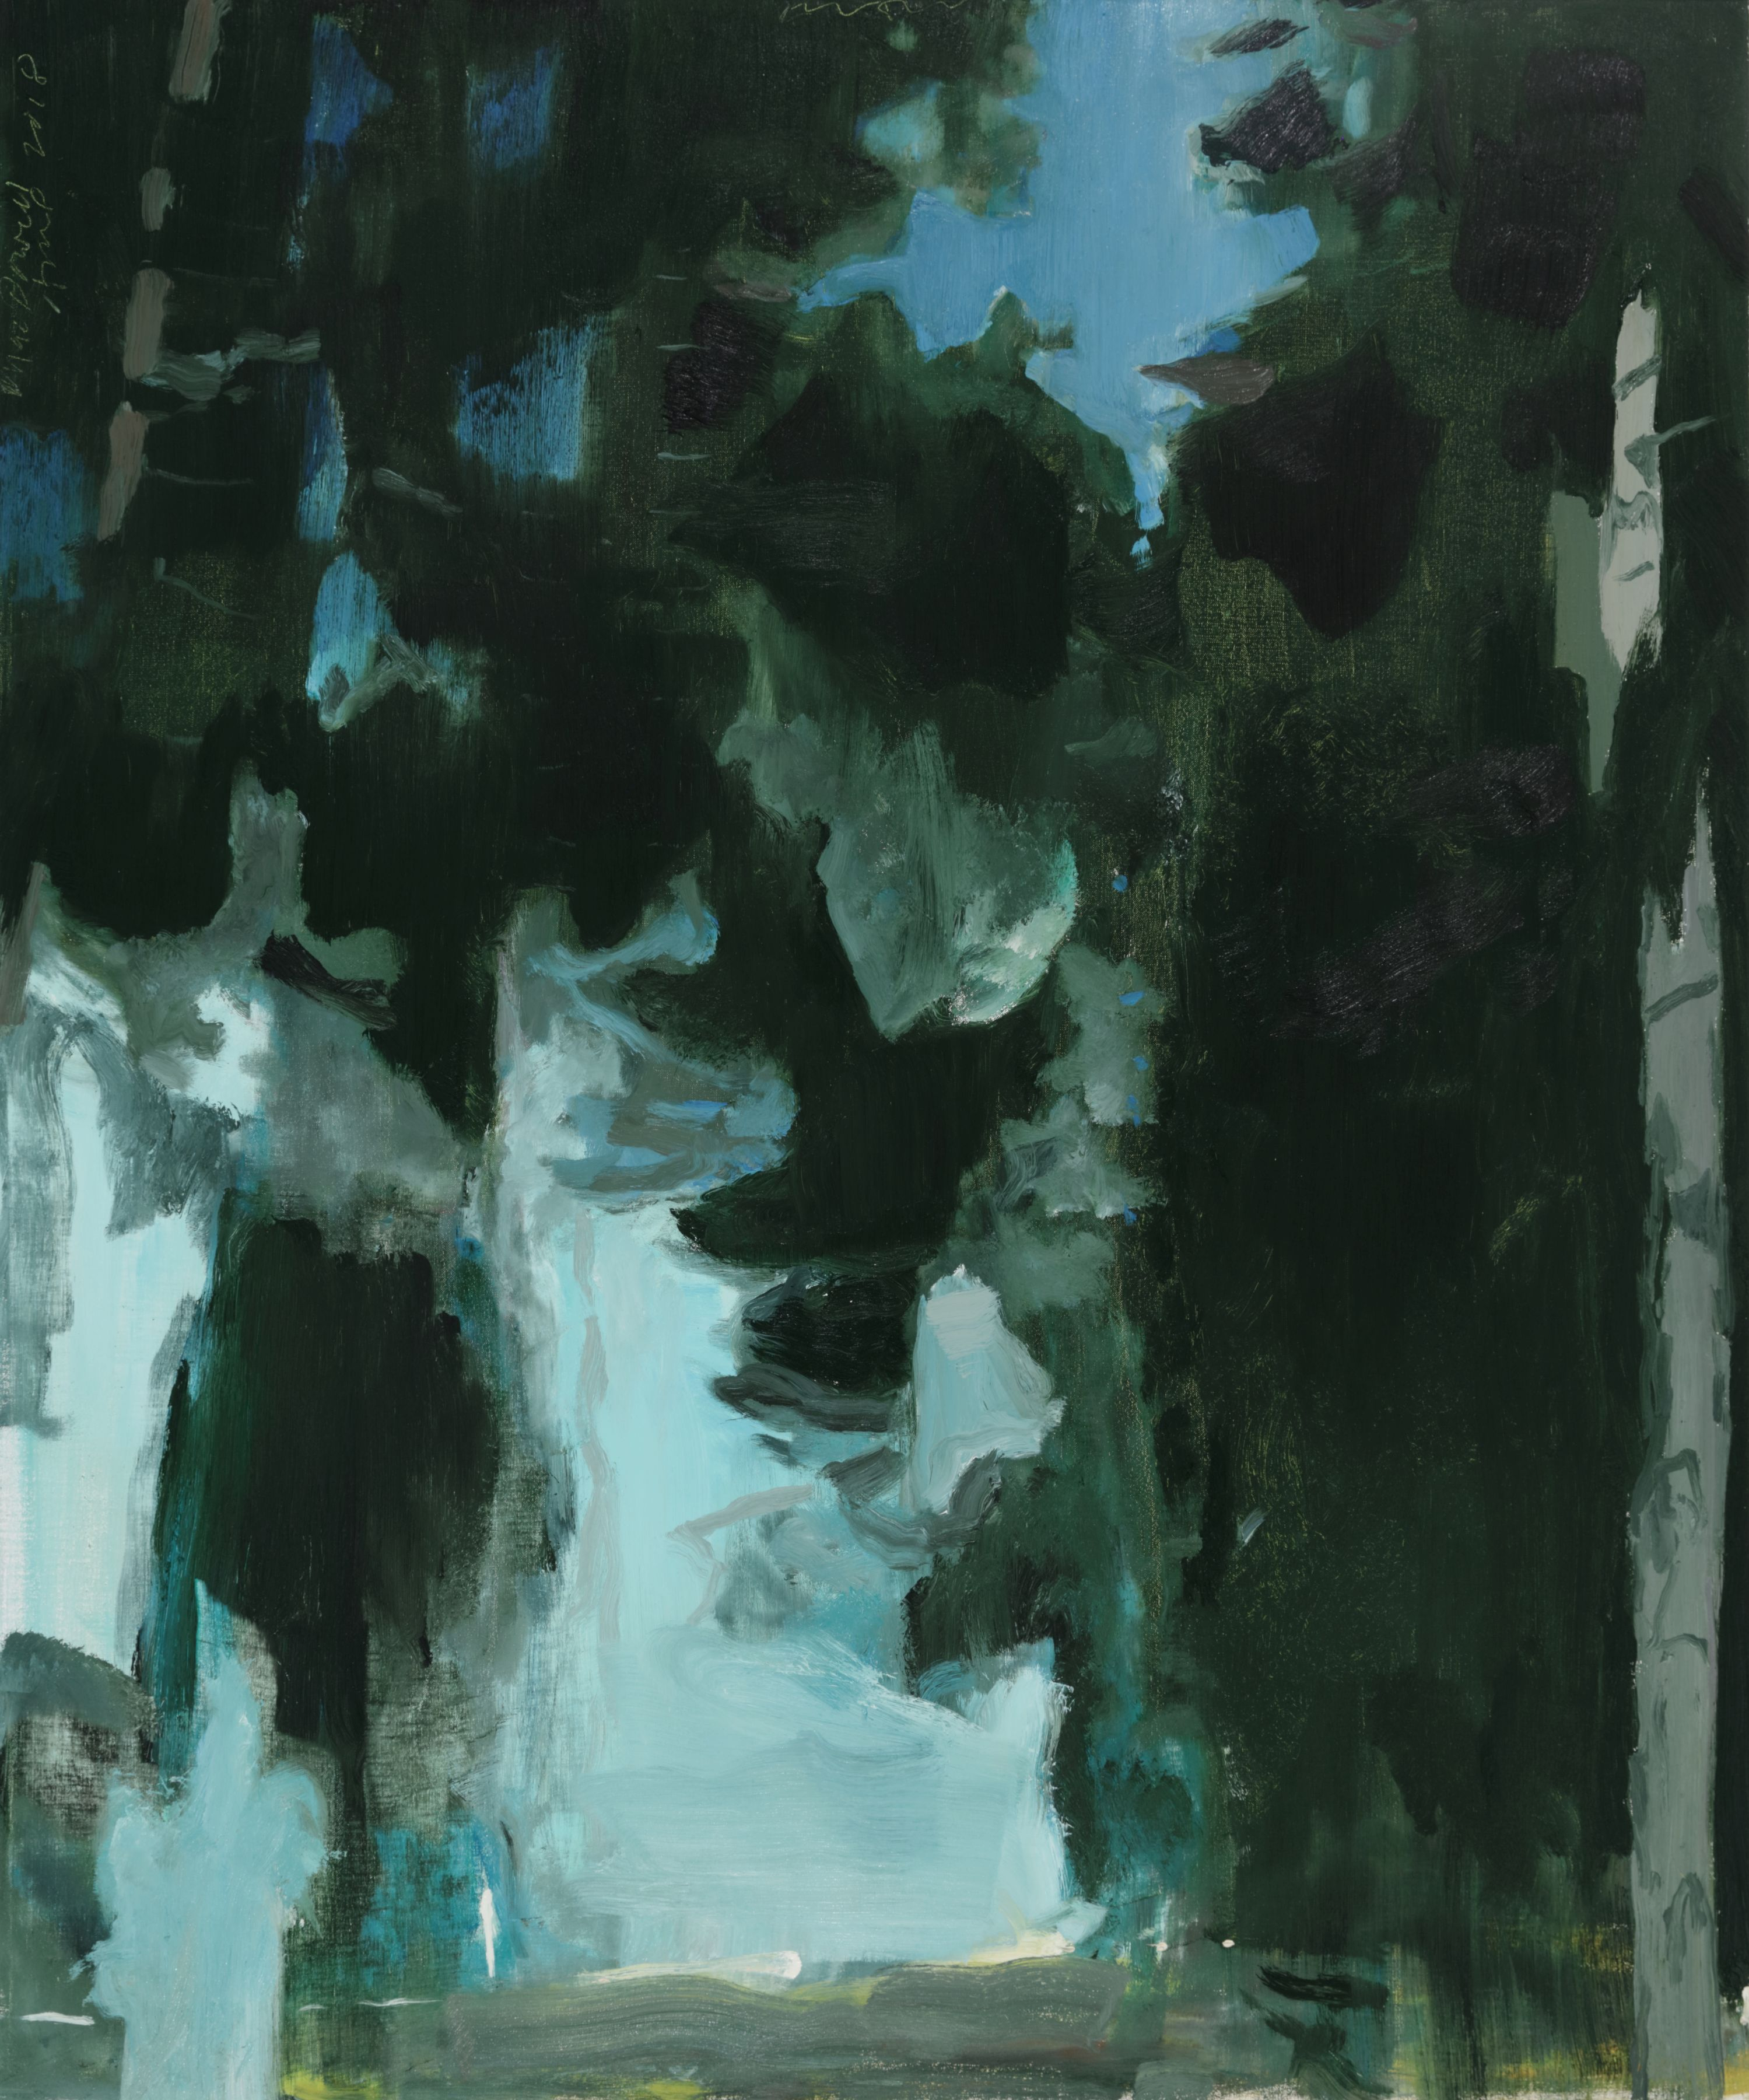 Pinewood Nocturne no. 1, 2018, Oil on linen